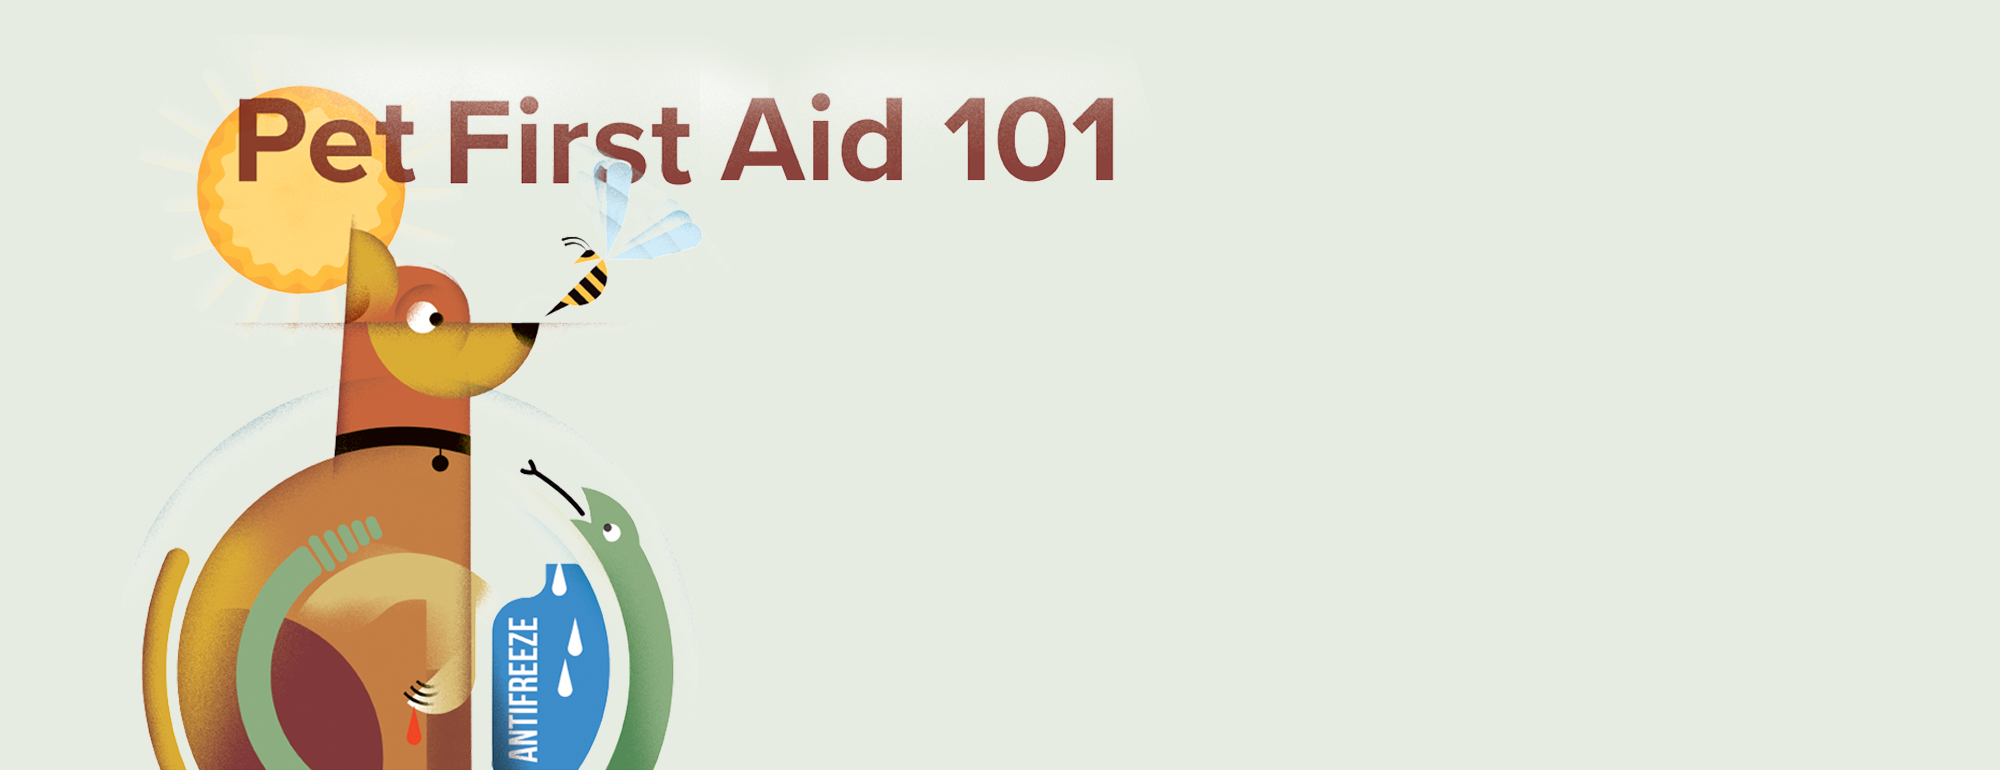 pet first aid illustration